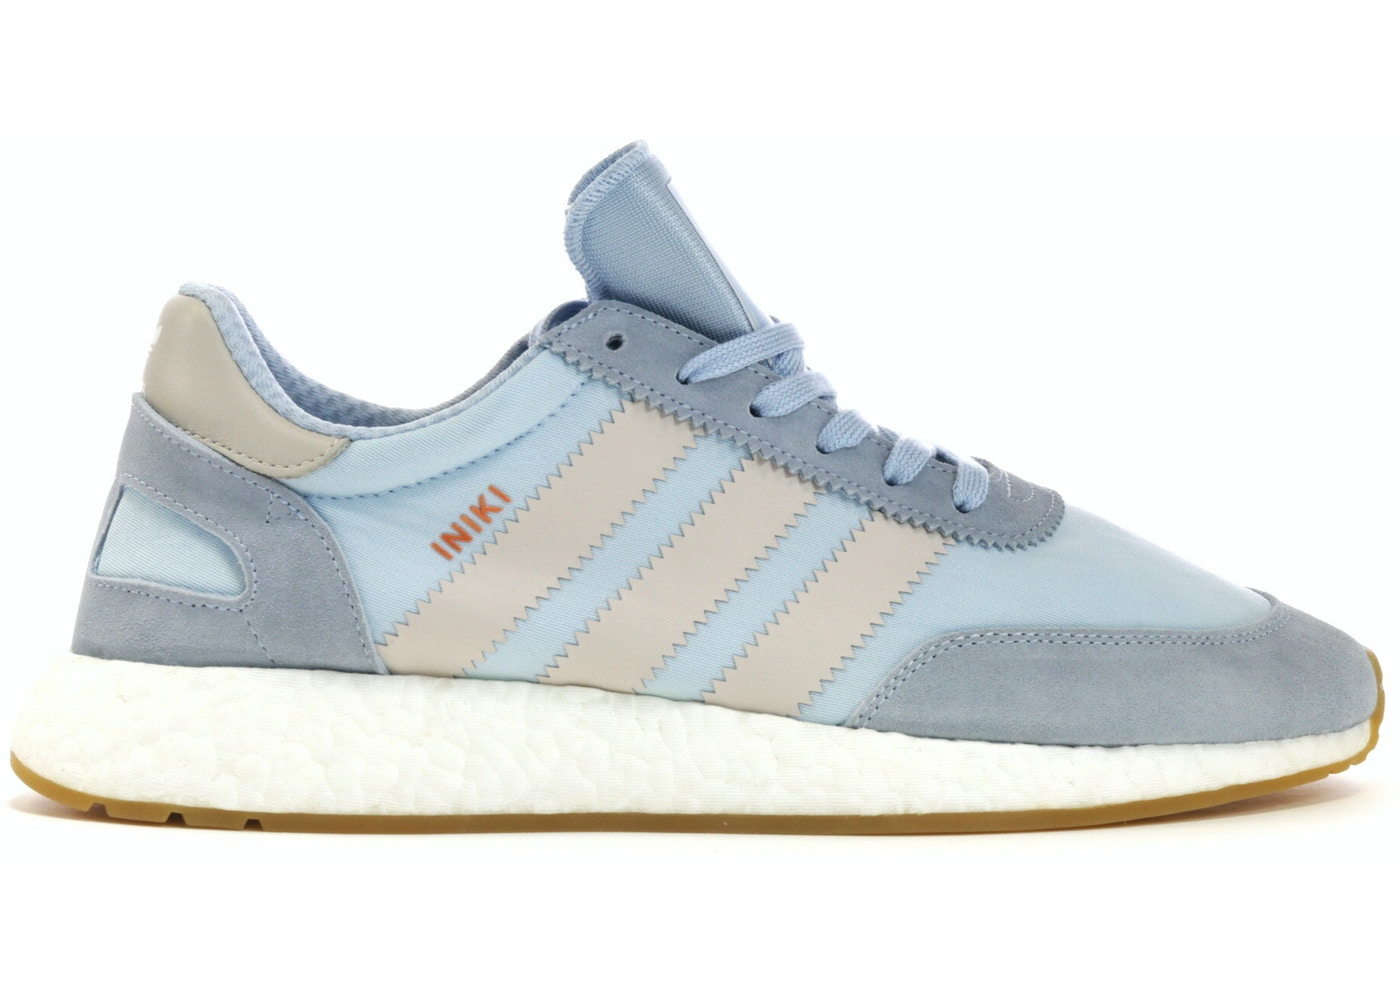 c79a7ddffb3 Buy adidas Iniki Size 15 Shoes & Deadstock Sneakers